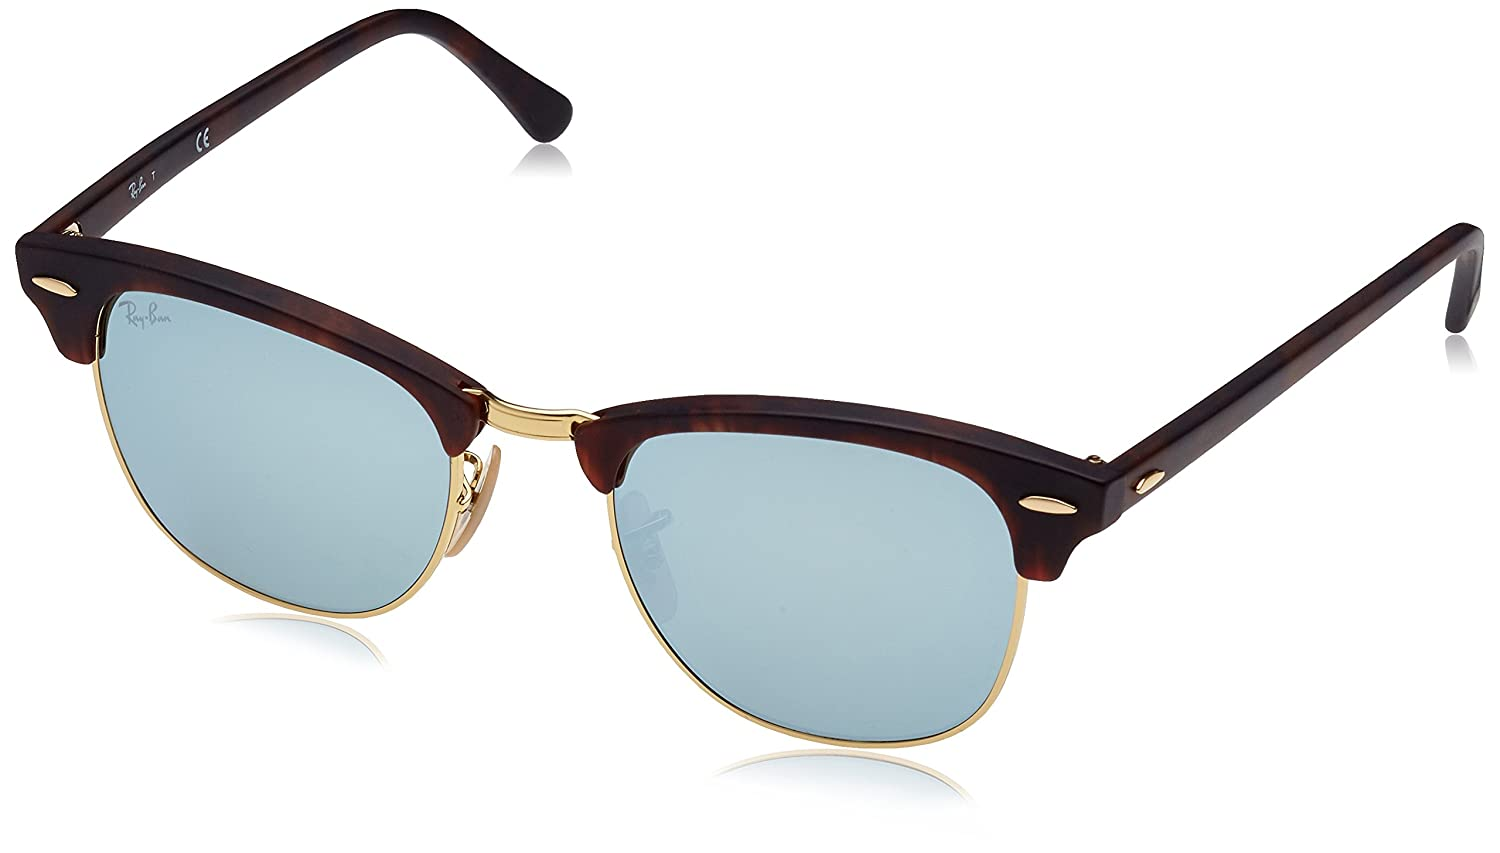 78908c2dccc Amazon.com  Ray-Ban CLUBMASTER - SAND HAVANA GOLD Frame LIGHT GREEN MIRROR  SILVER Lenses 51mm Non-Polarized  Clothing